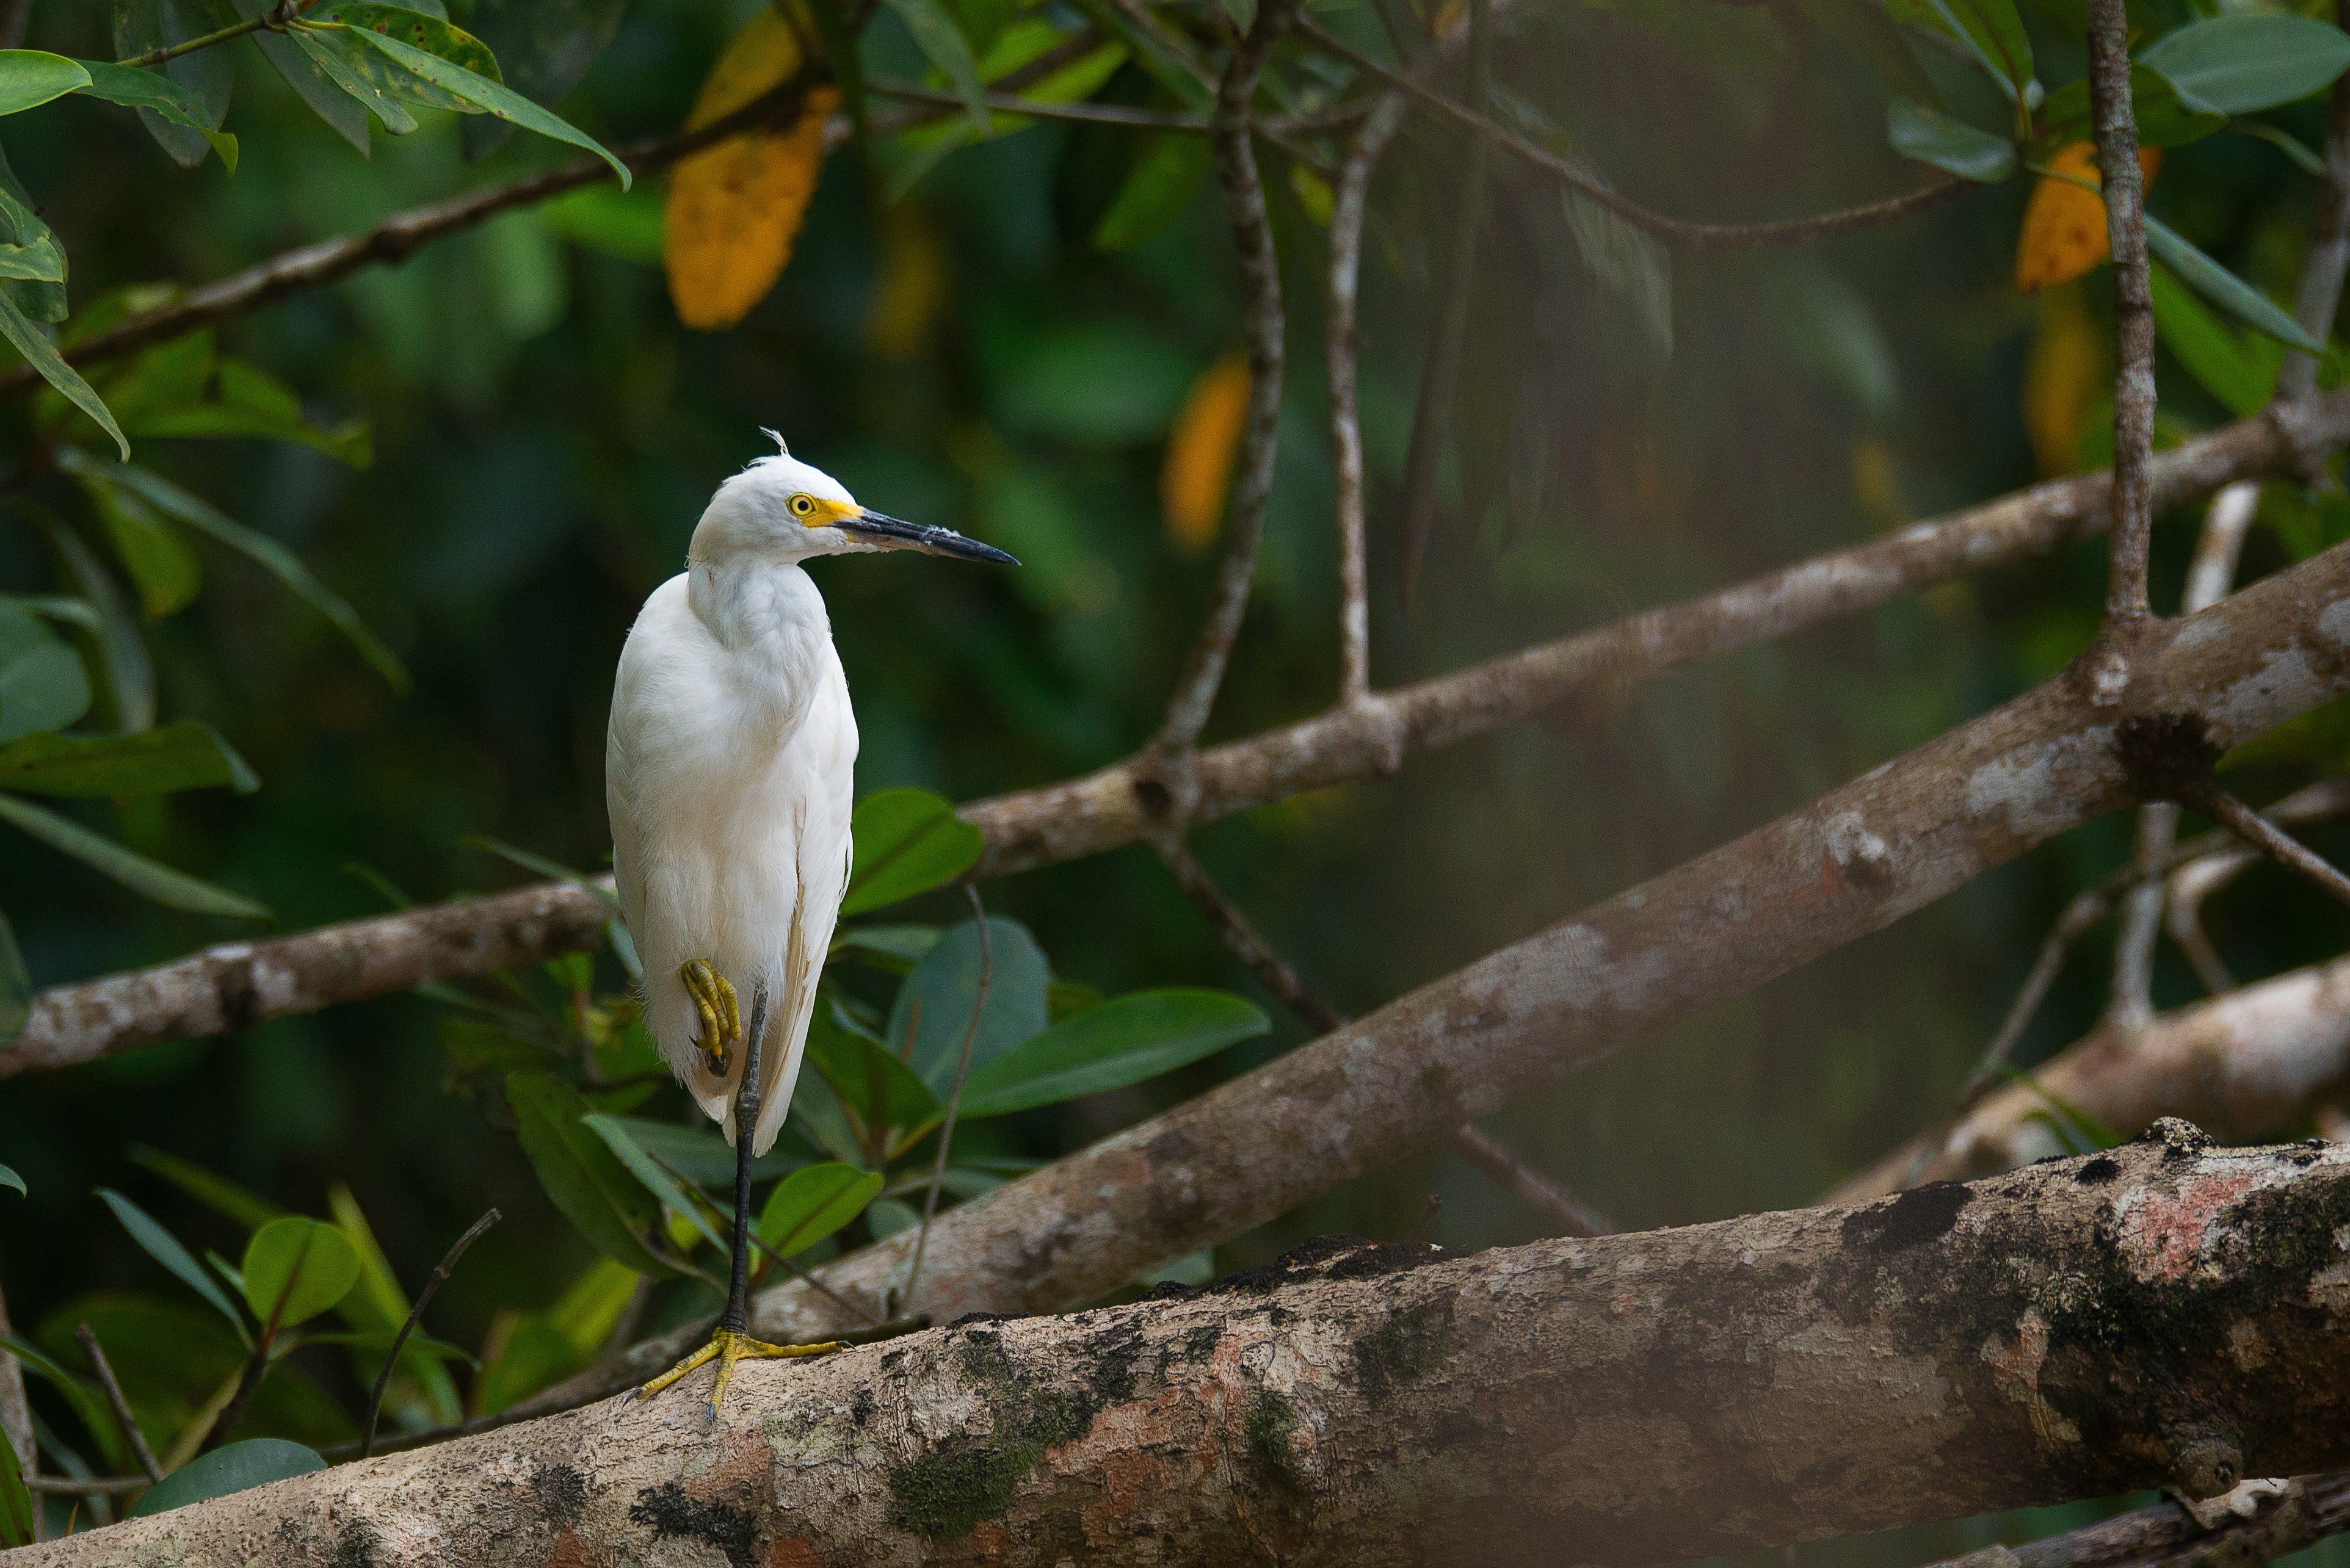 white bird perched on tree branch